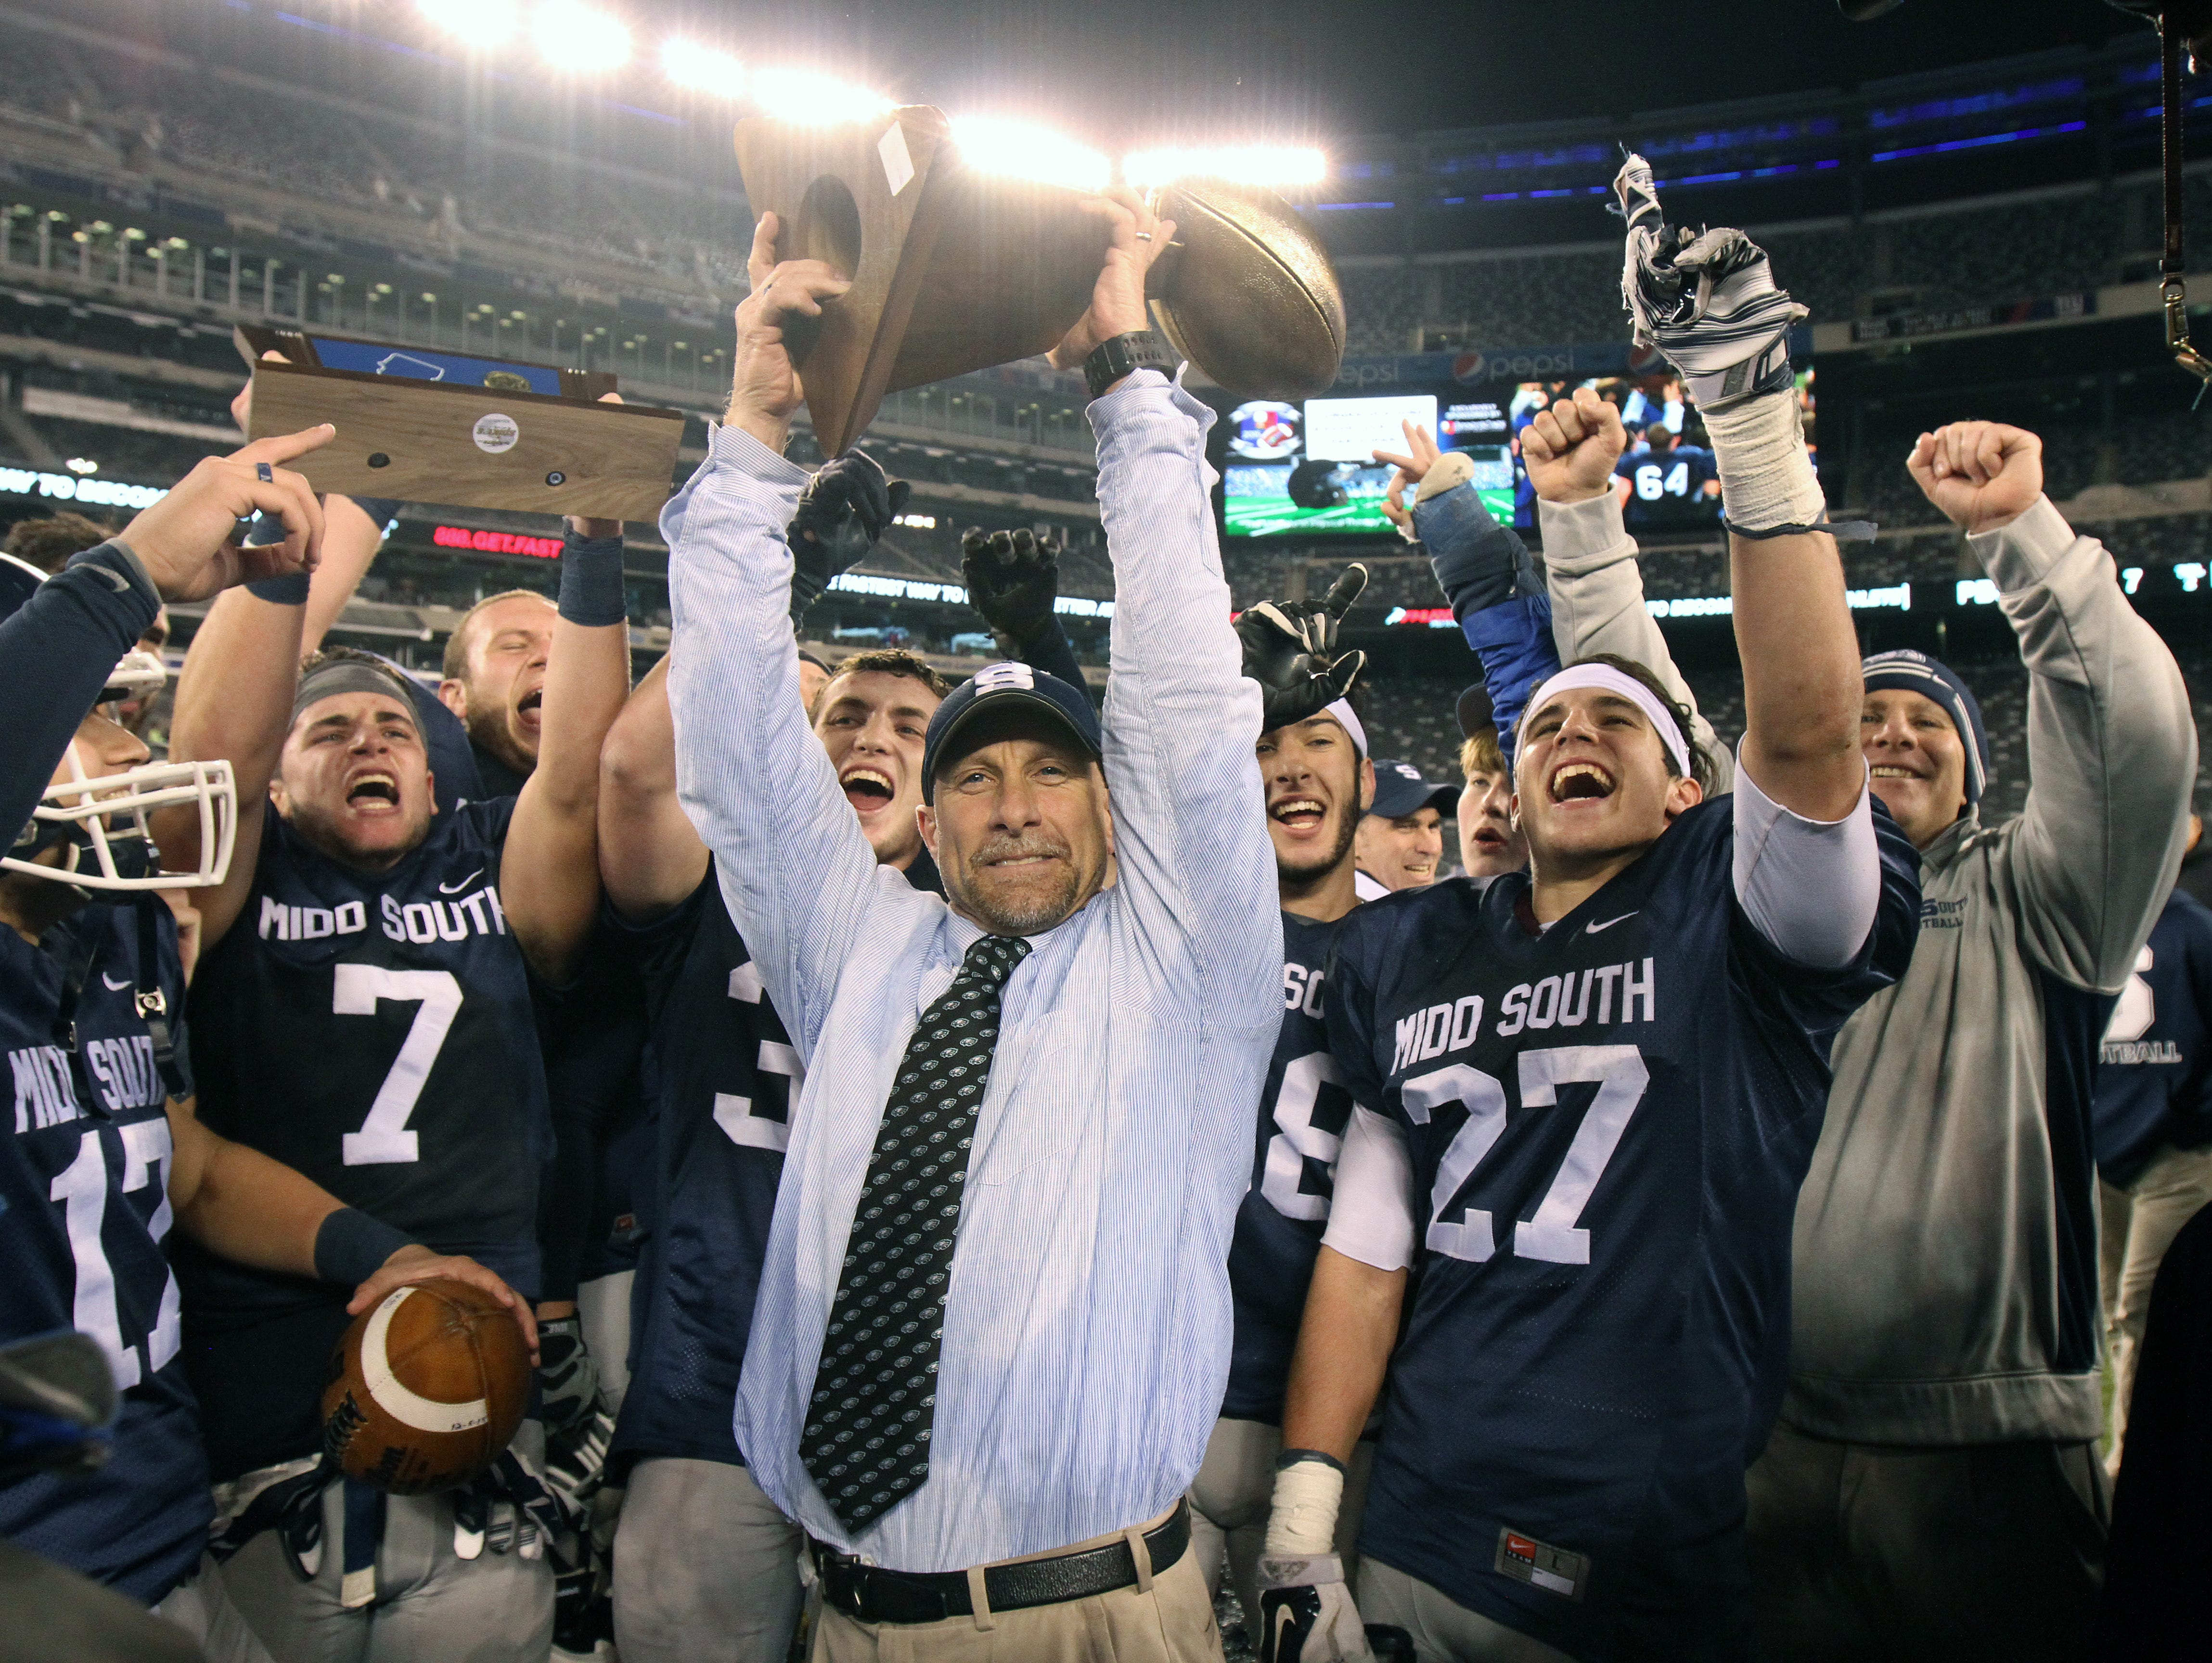 Head coach Steve Antonucci (center) and the Middletown South players celebrate after the Eagles' 35-7 win over Phillipsburg in the NJSIAA North II, Group IV championship game at MetLife Stadium. Middletown South finishes No. 1 in the Asbury Park Press Top 10.